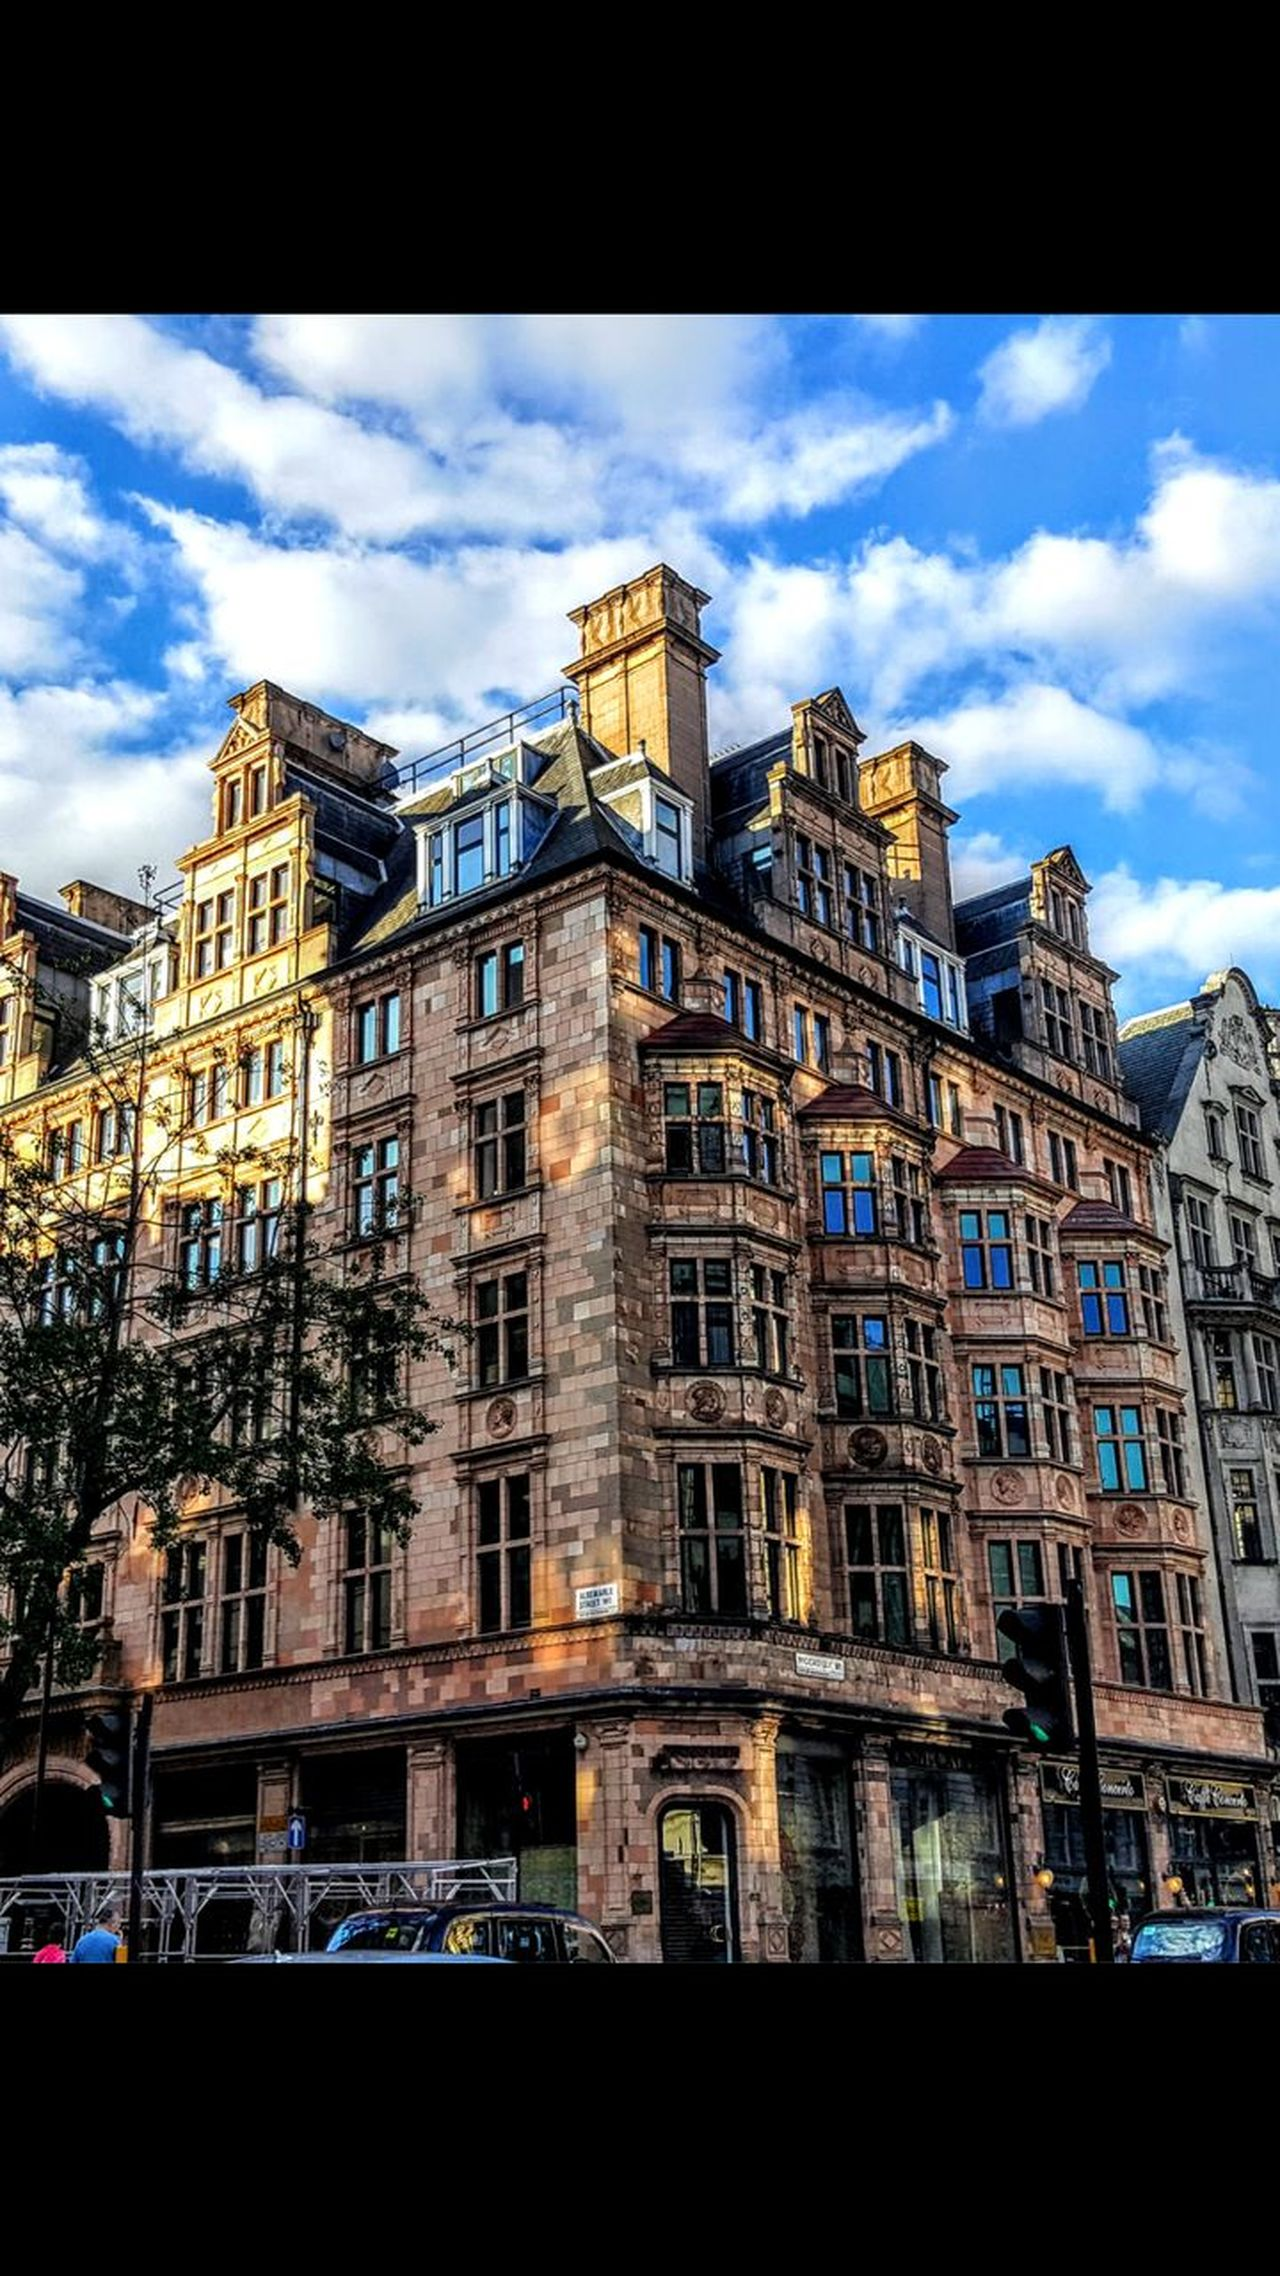 Low Angle View Architecture Sky Building Exterior Built Structure Cloud - Sky No People Outdoors Day Cityscape City London Life London Photography London's Buildings Londononly Reflection Relaxing Travel Destinations Friends ❤ Facebook Page Tranquil Scene London Streets LONDON❤ London Cityscape